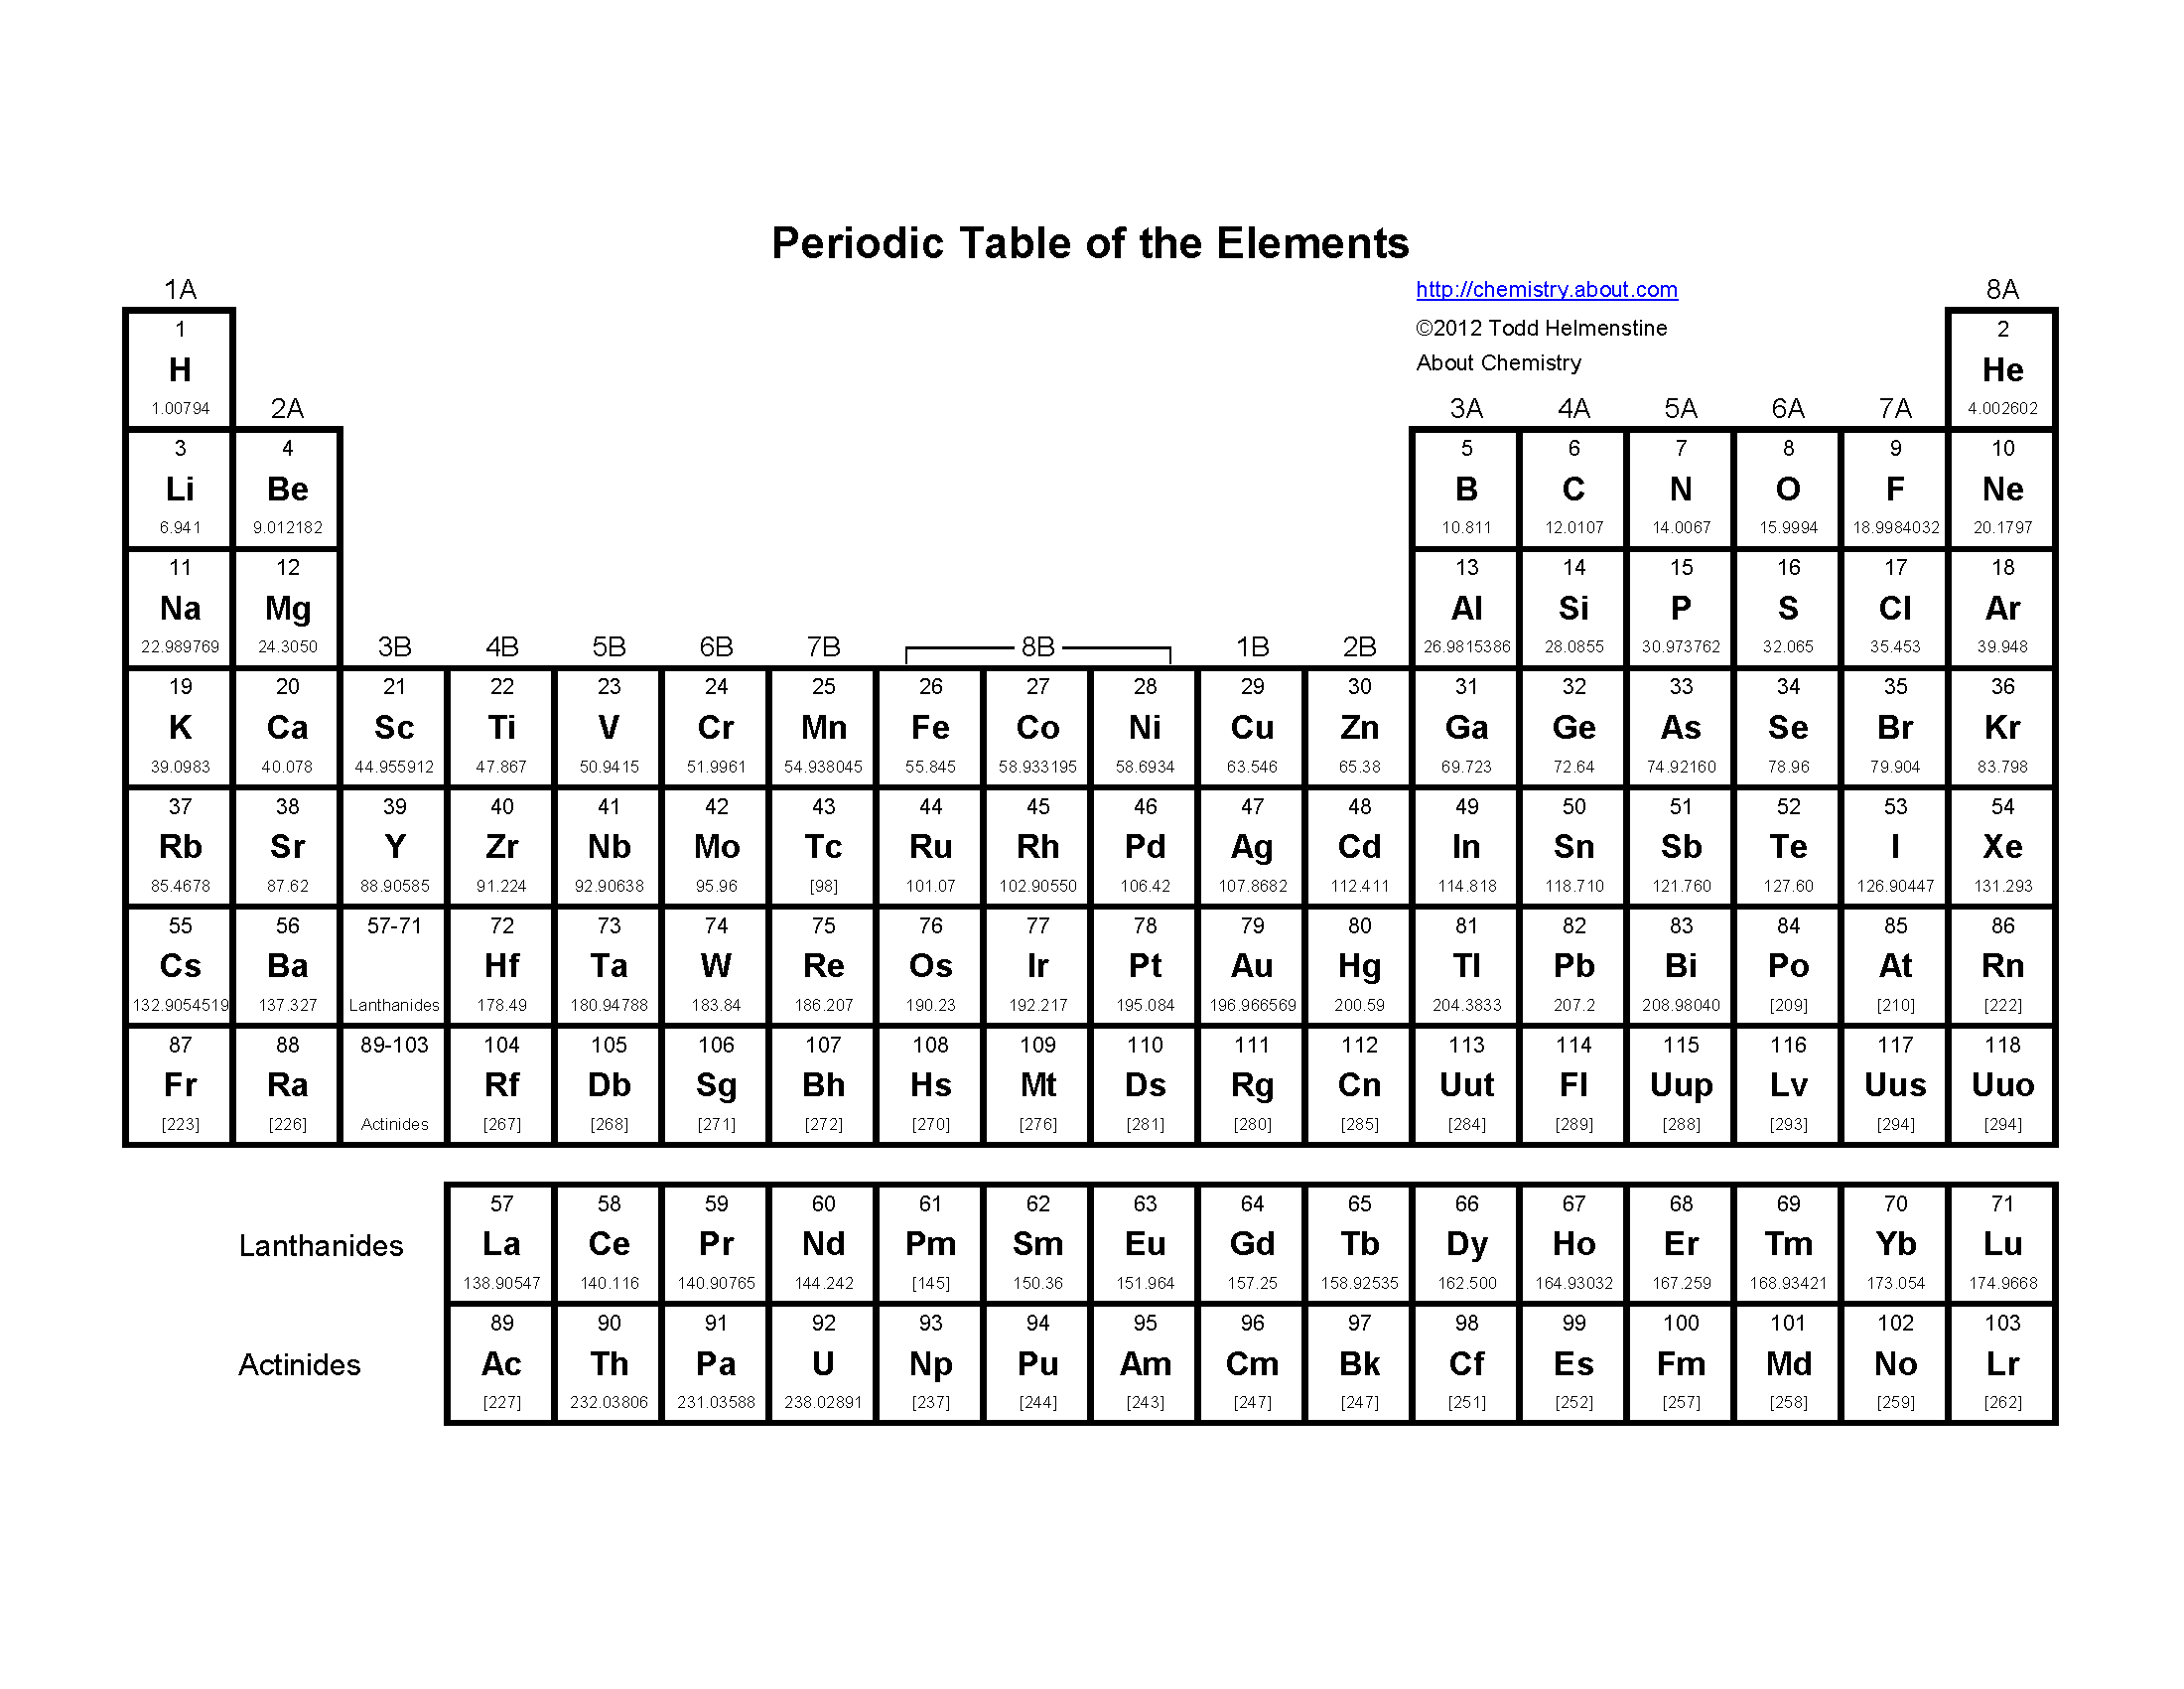 This is a basic periodic table containing the element's symbol, atomic number and atomic mass.